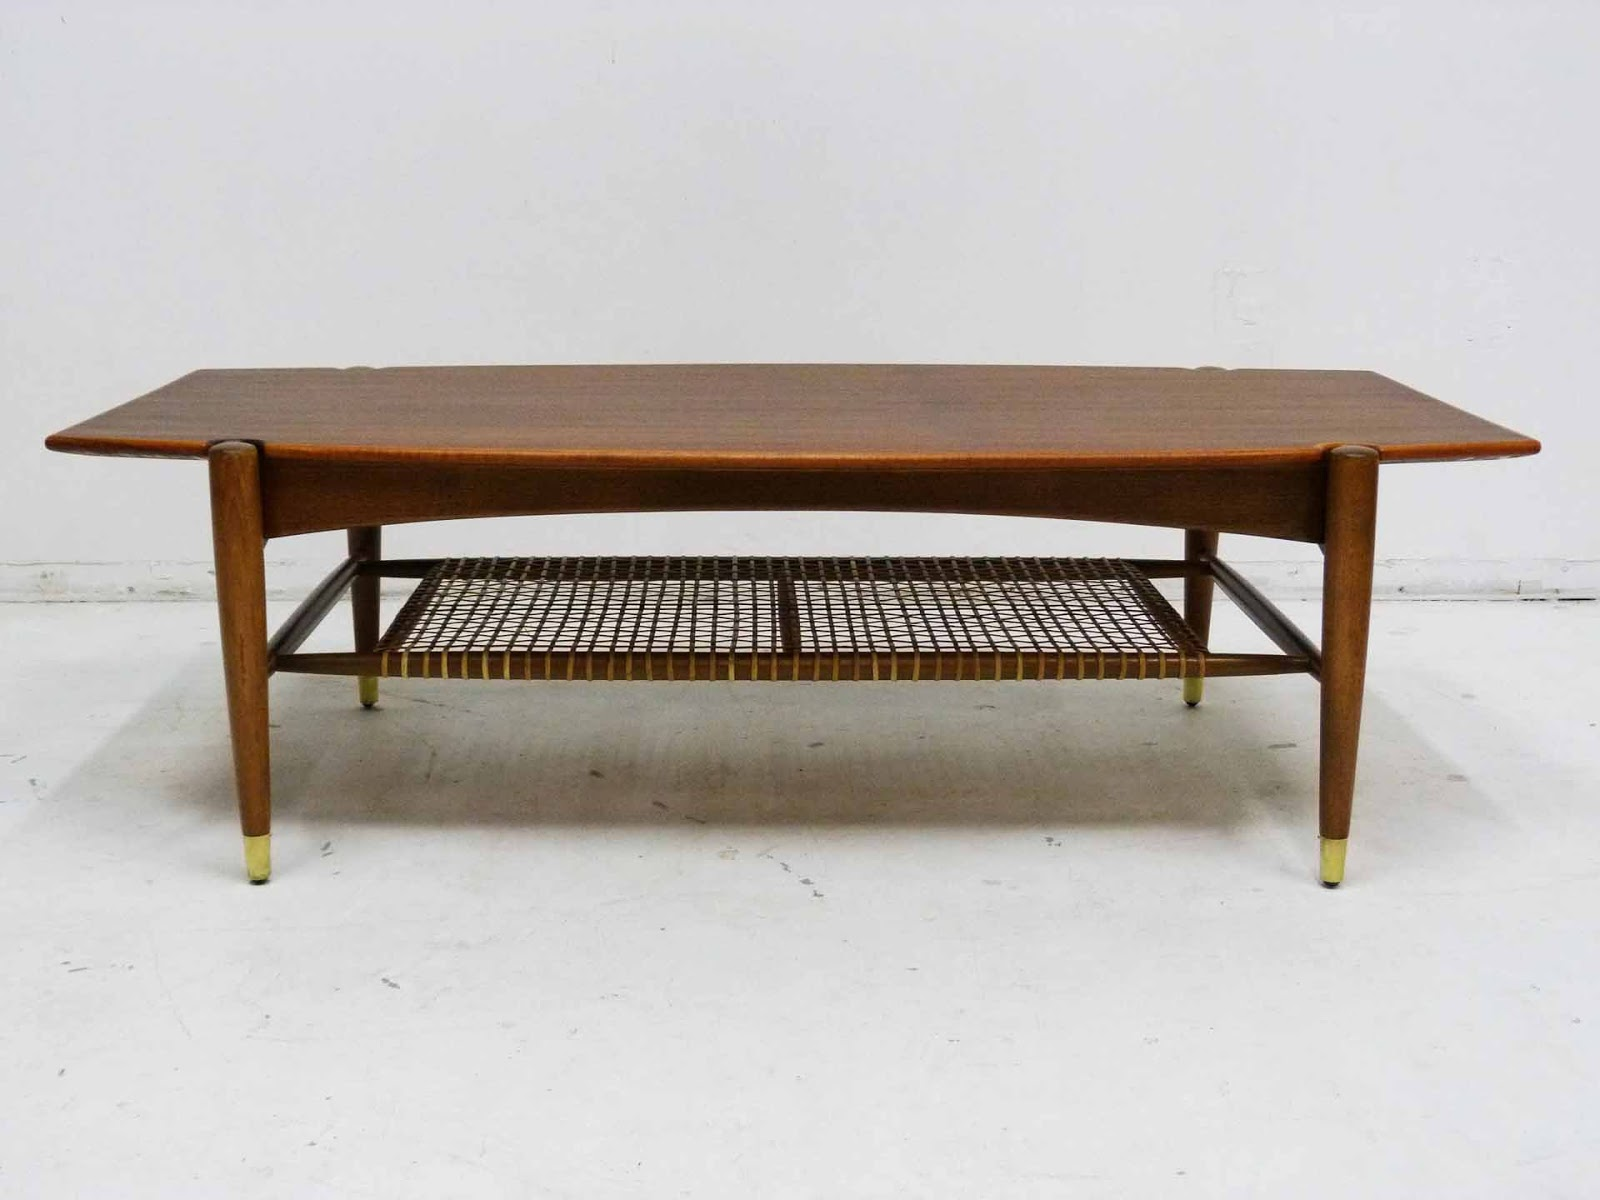 Modern Mid Century Danish Vintage Furniture Shop Used Restoration Repair Denver